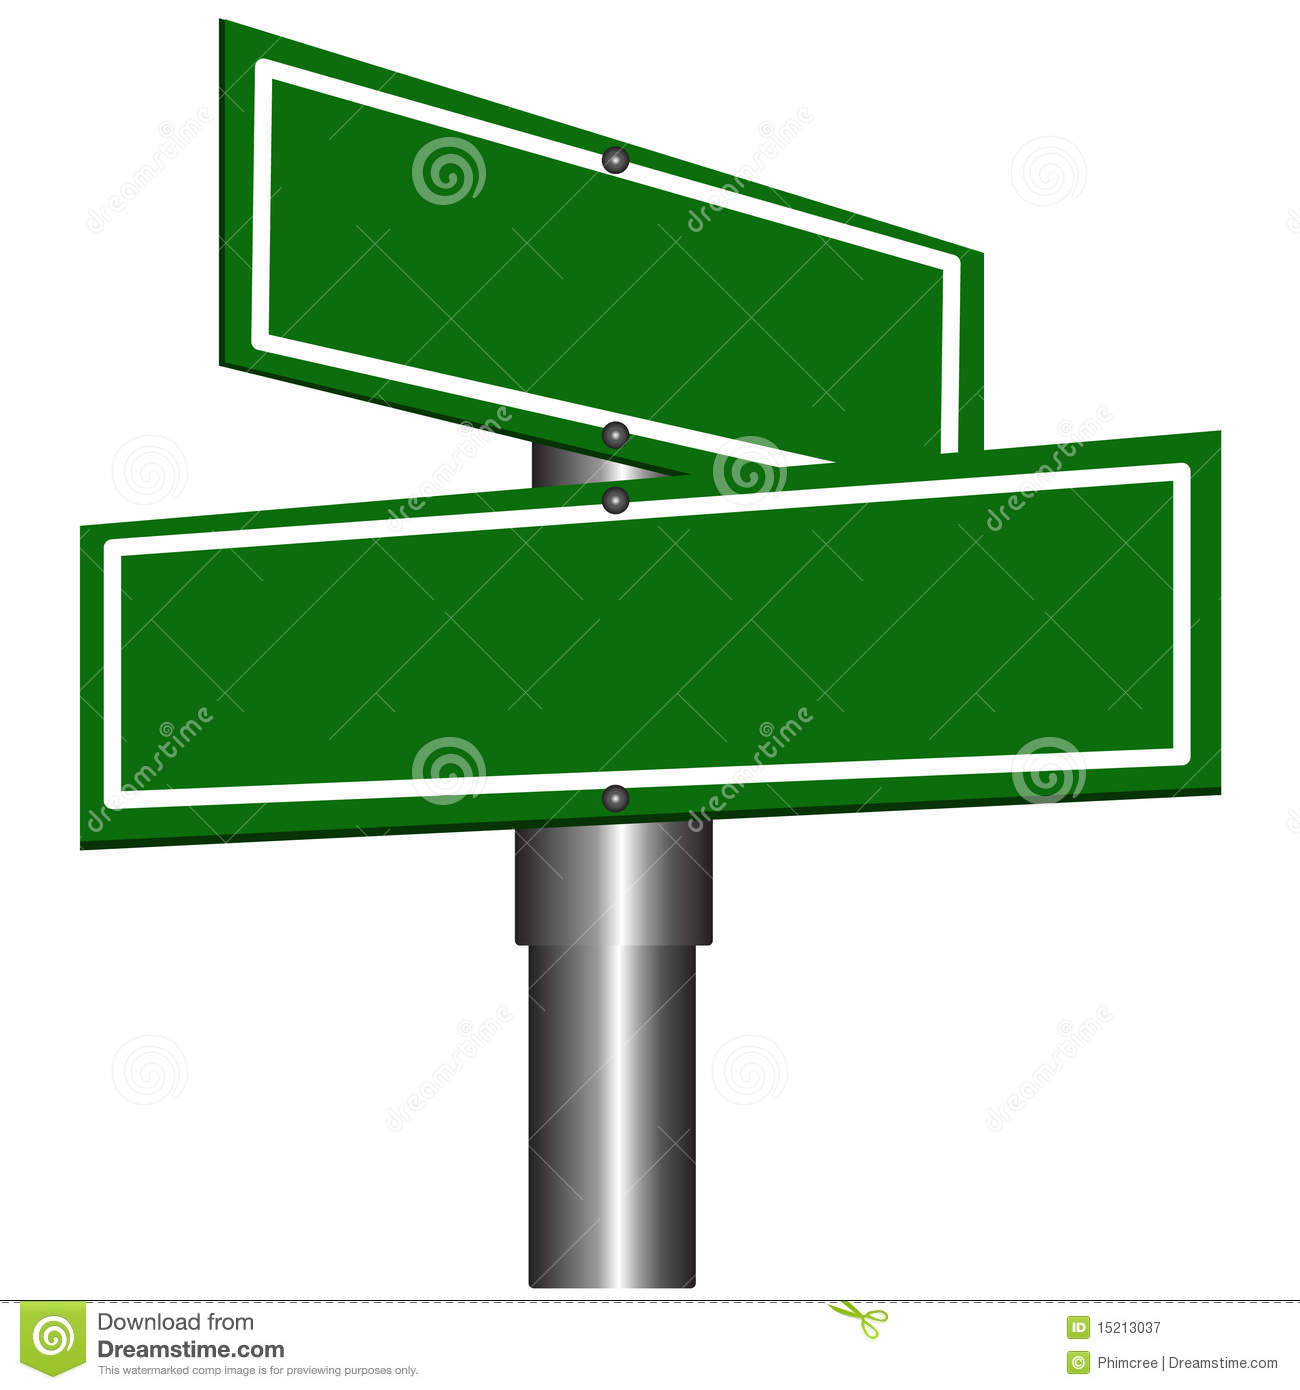 Blank Street Signs stock vector. Illustration of business ...